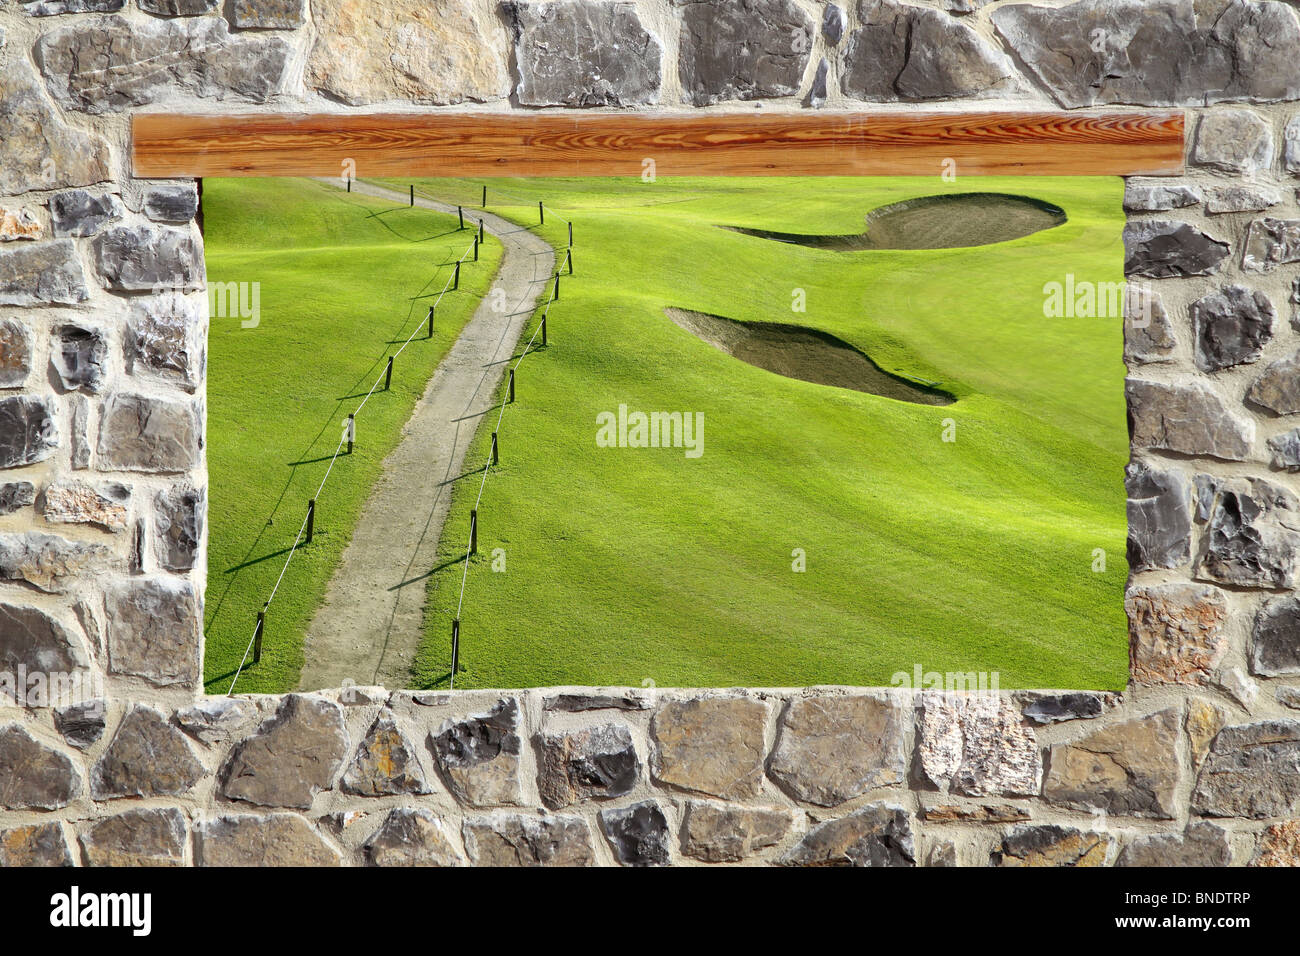 view window golf course stone masonry wall - Stock Image